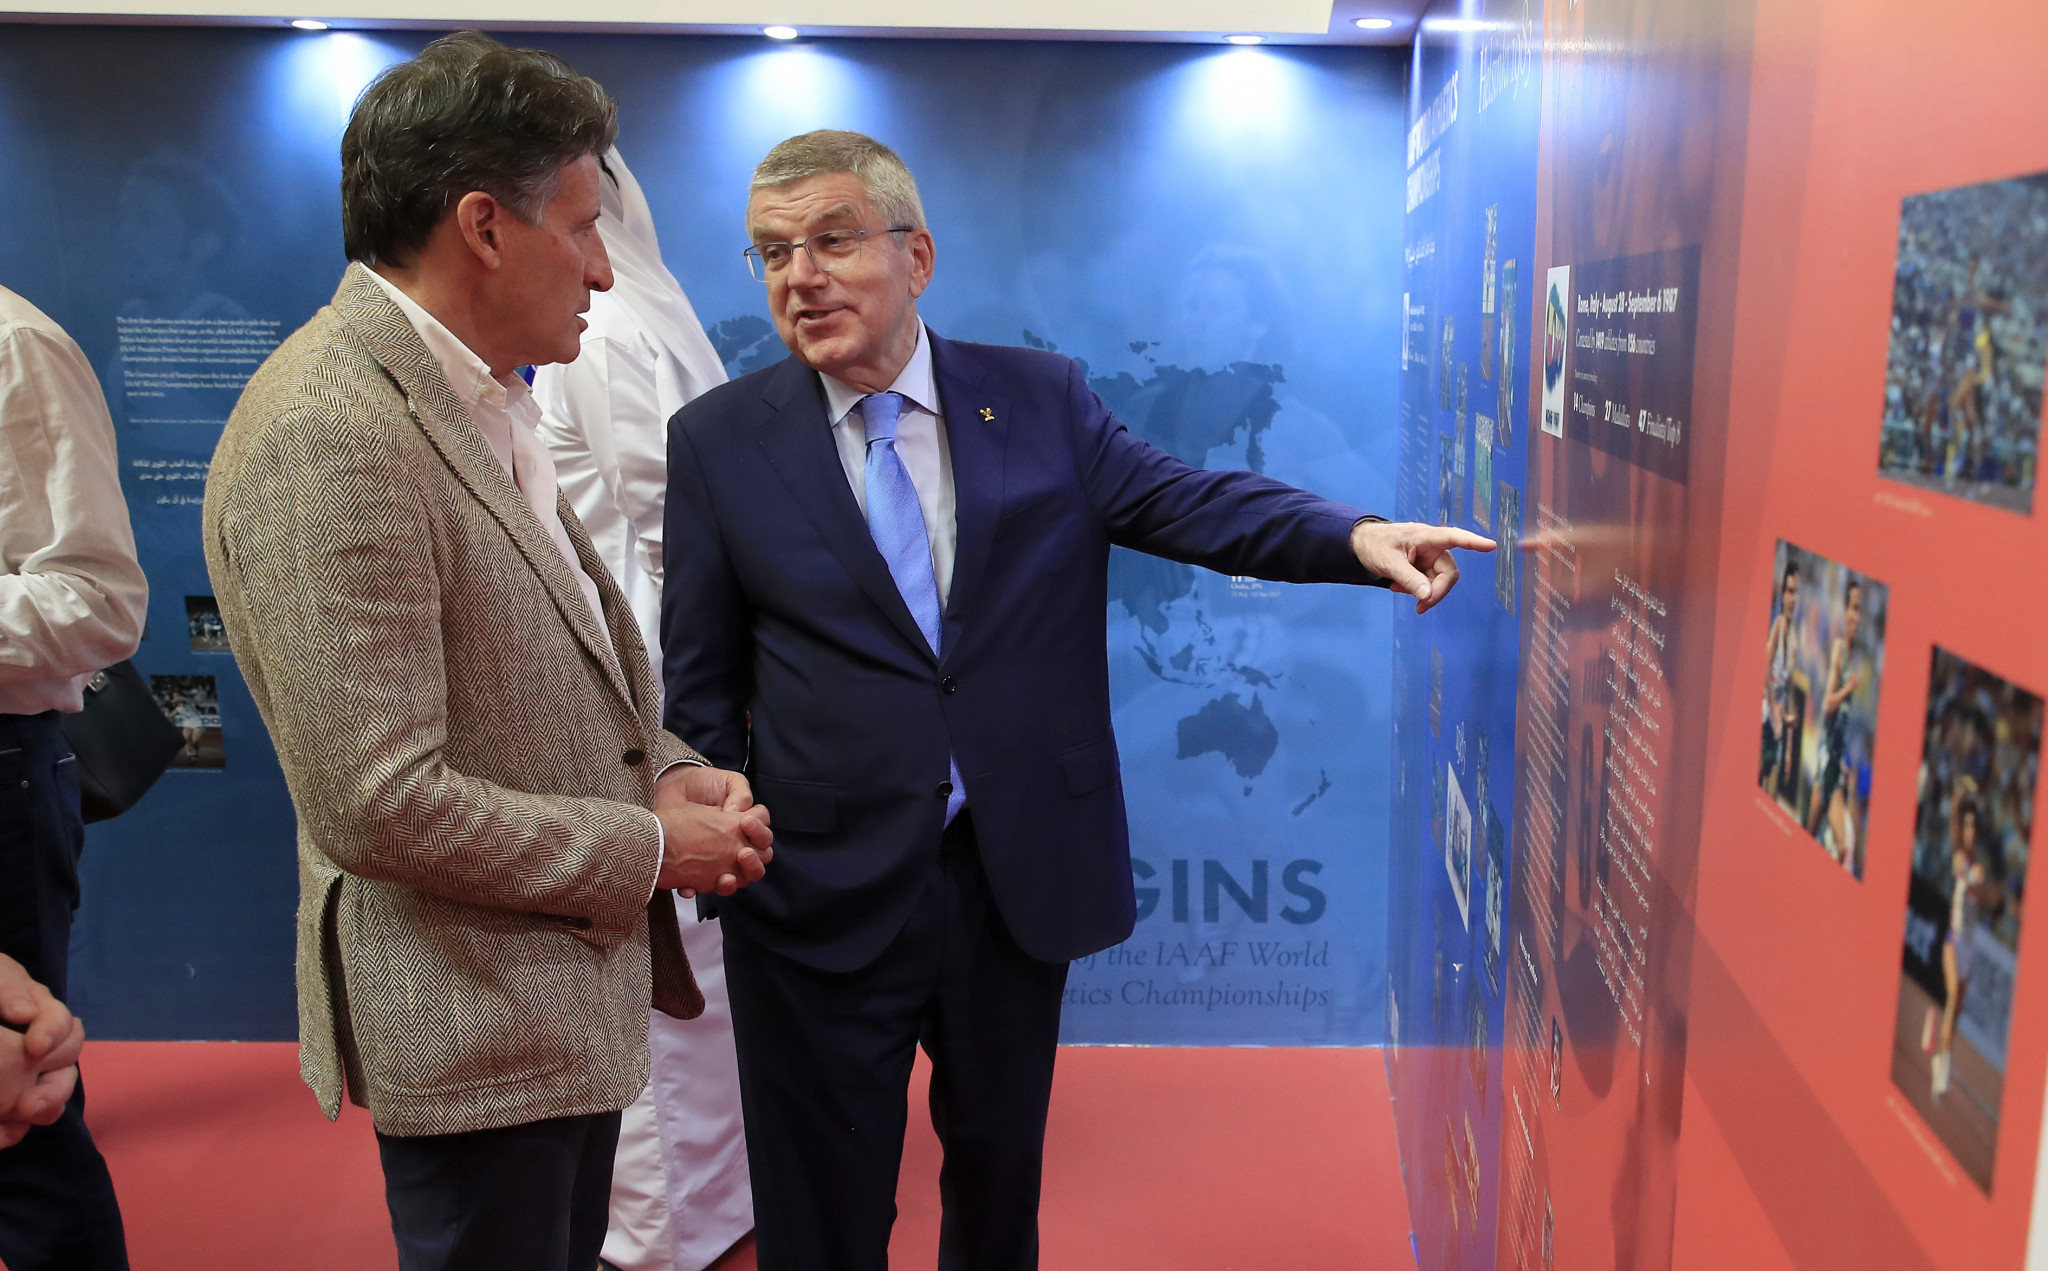 President Thomas Bach, right, is believed to have had informal discussions with Sebastian Coe about becoming an IOC member following his re-election as head of the IAAF ©Getty Images